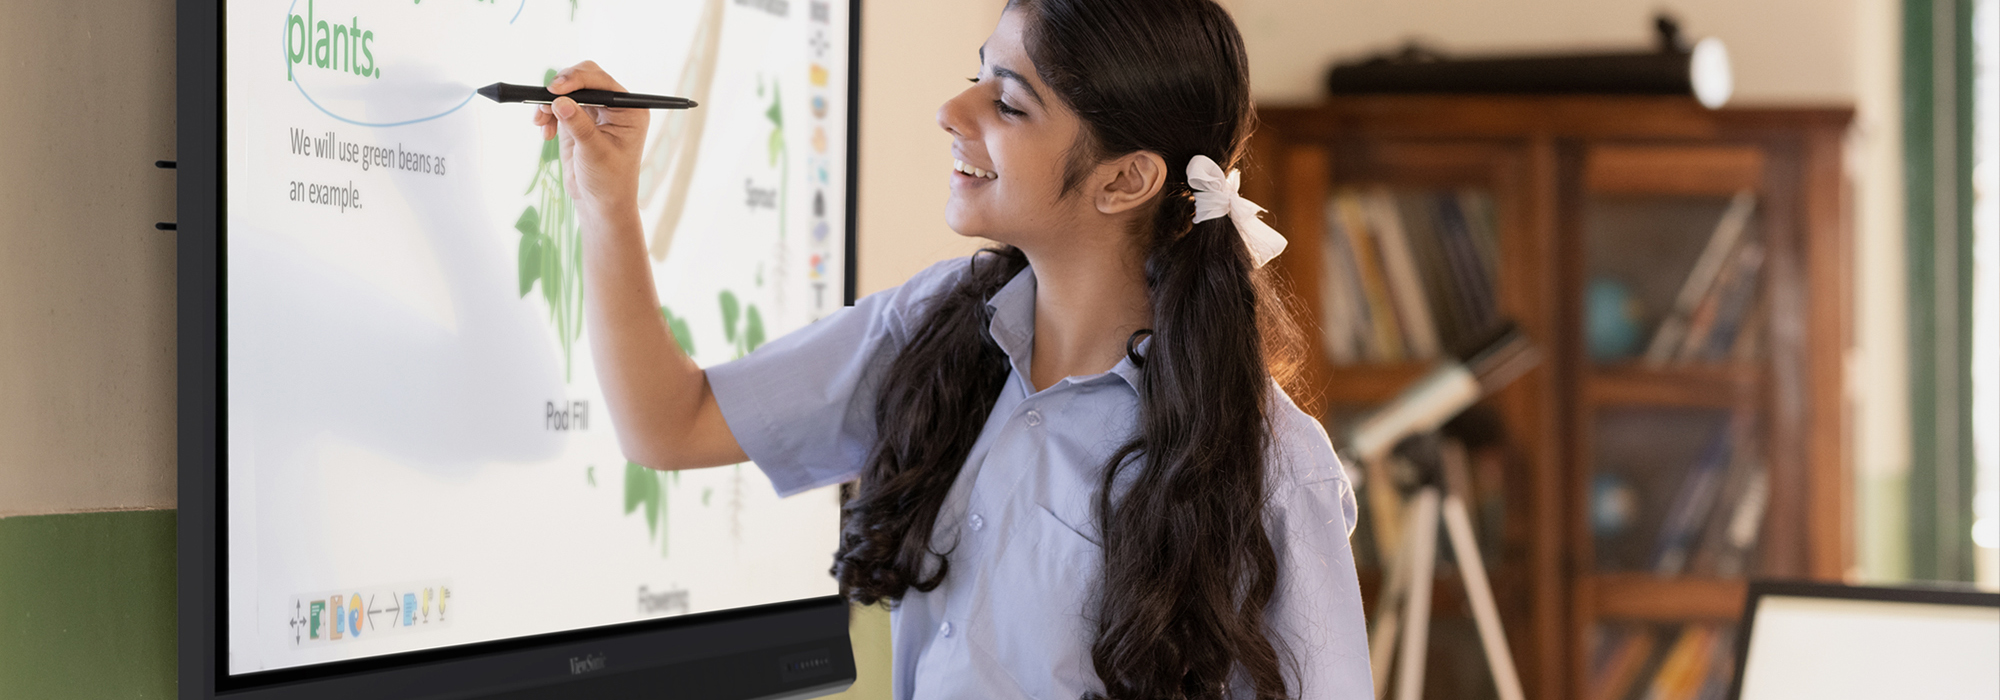 ViewSonic Launches Latest Generation of ViewBoard Interactive Flat Panels to Enhance the Learning Experience